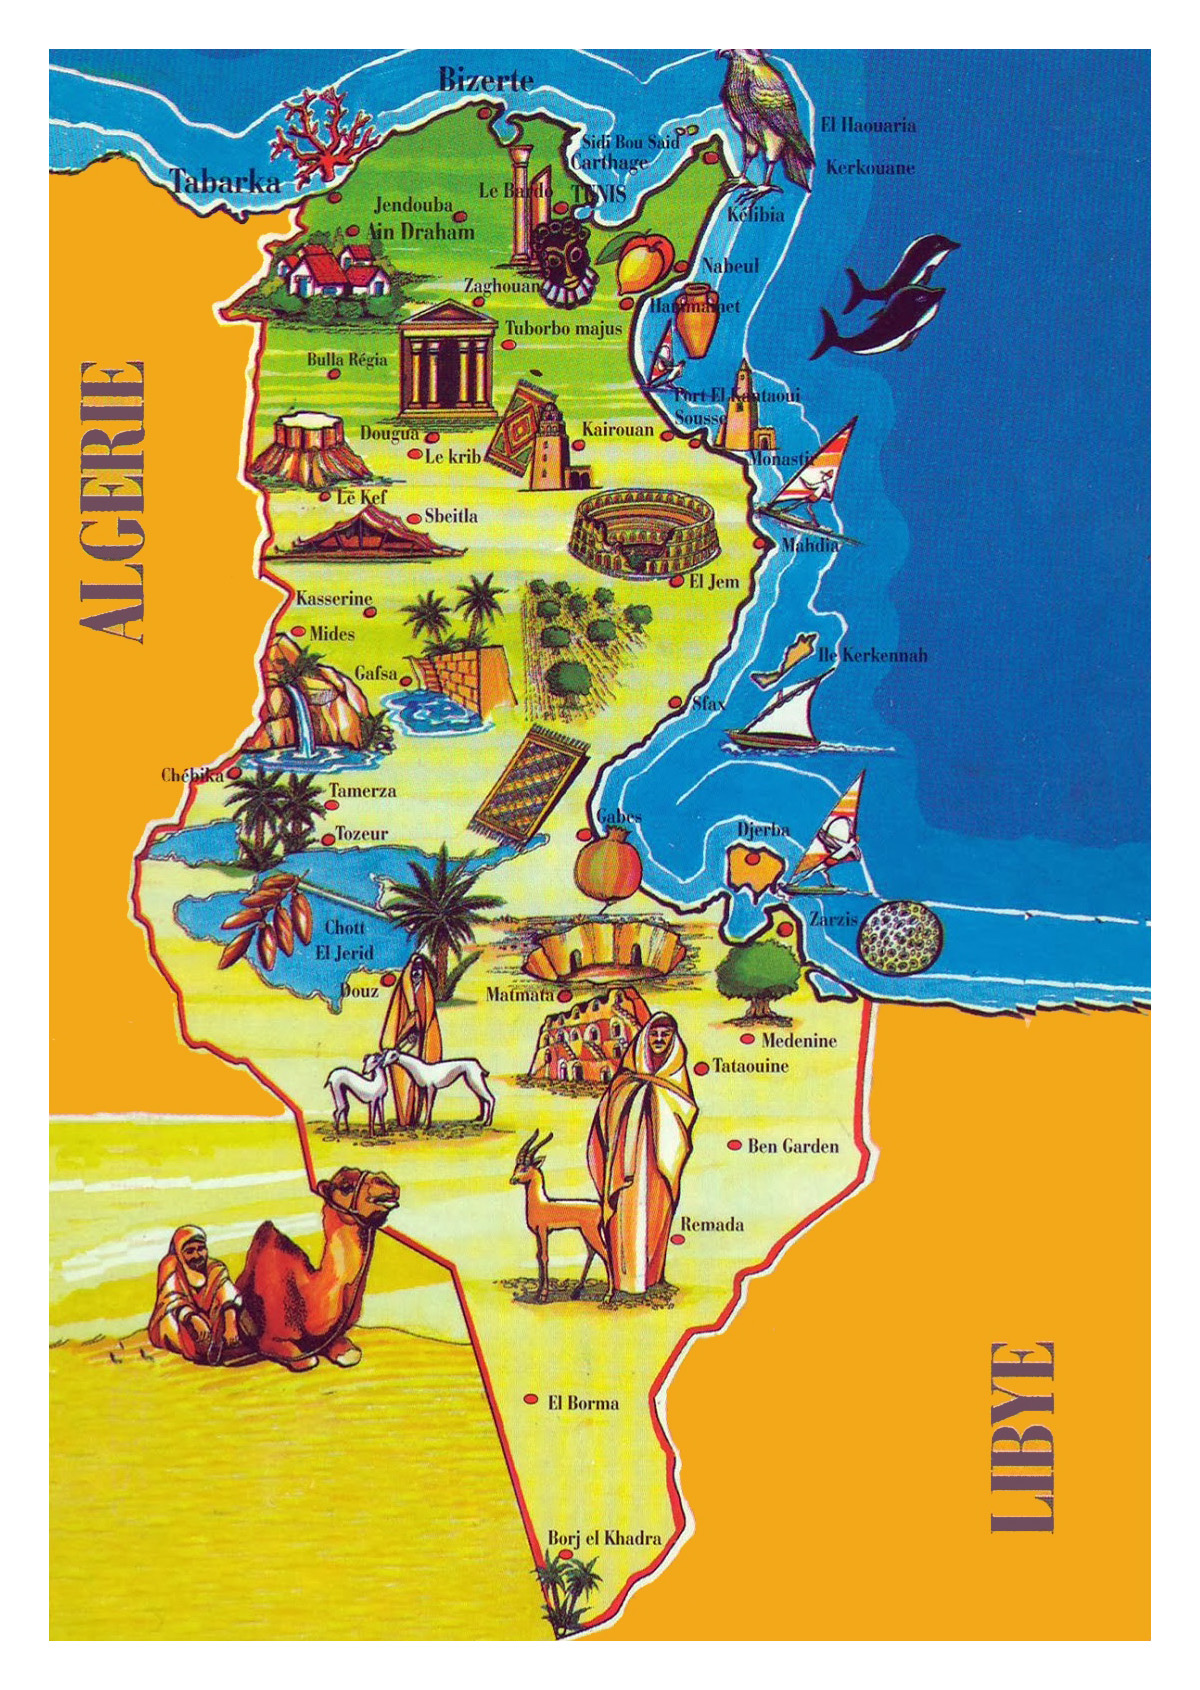 Large tourist illustrated map of Tunisia | Tunisia | Africa ... on map of earth illustration, map of egypt illustration, map of japan illustration, map of zambia illustration, map of united states illustration, map of ancient greece illustration, world map illustration, map of italy illustration,